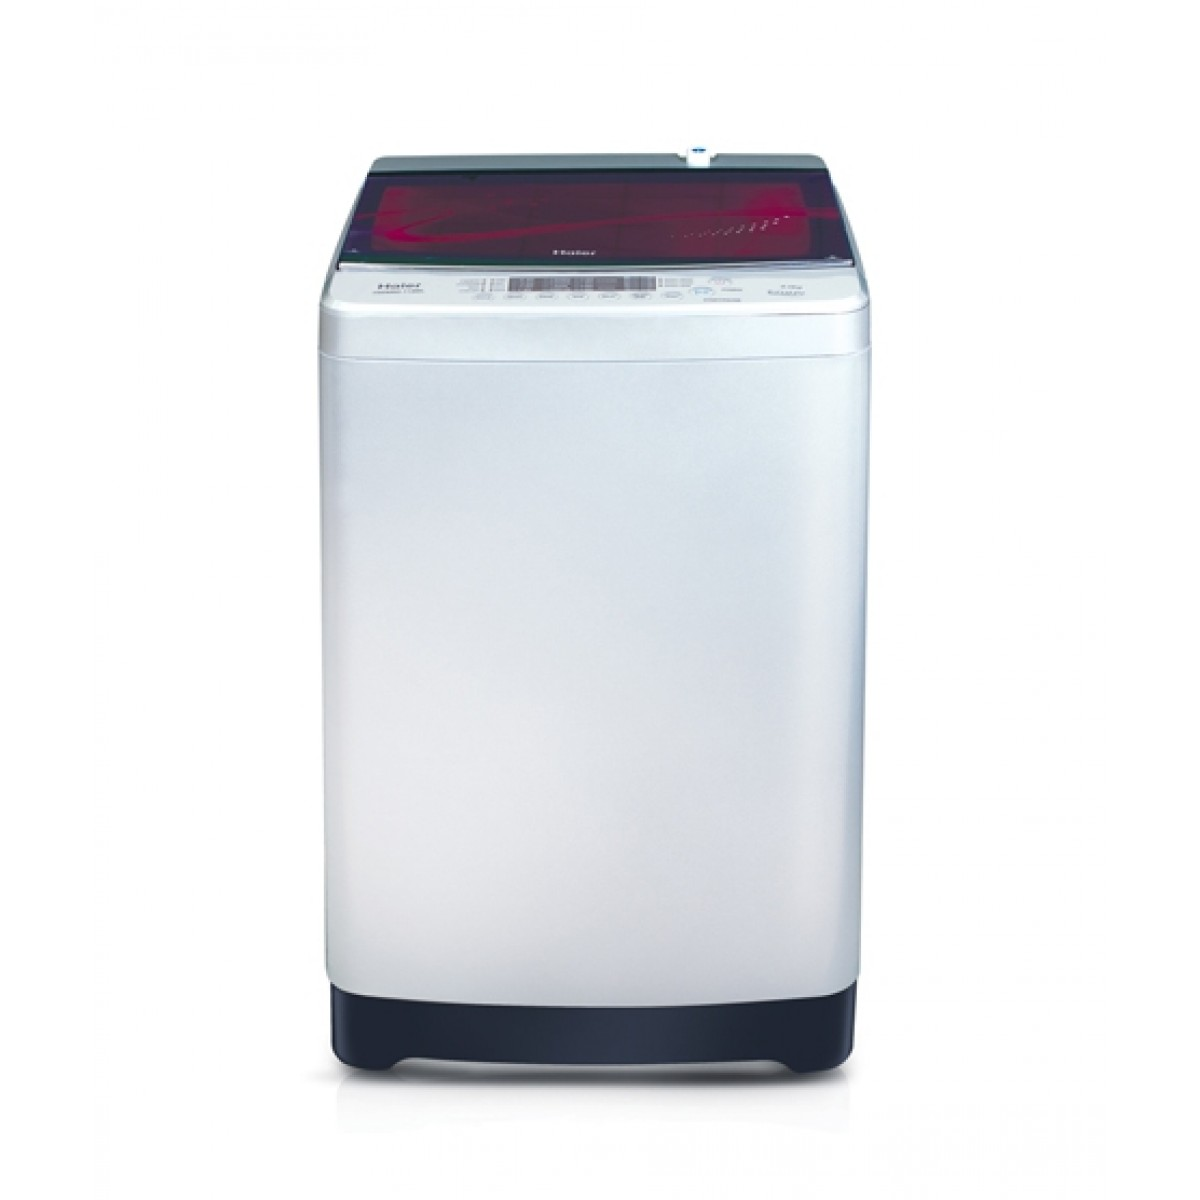 Haier Top Load Fully Automatic Washing Machine 8kg Red Hwm 80 118